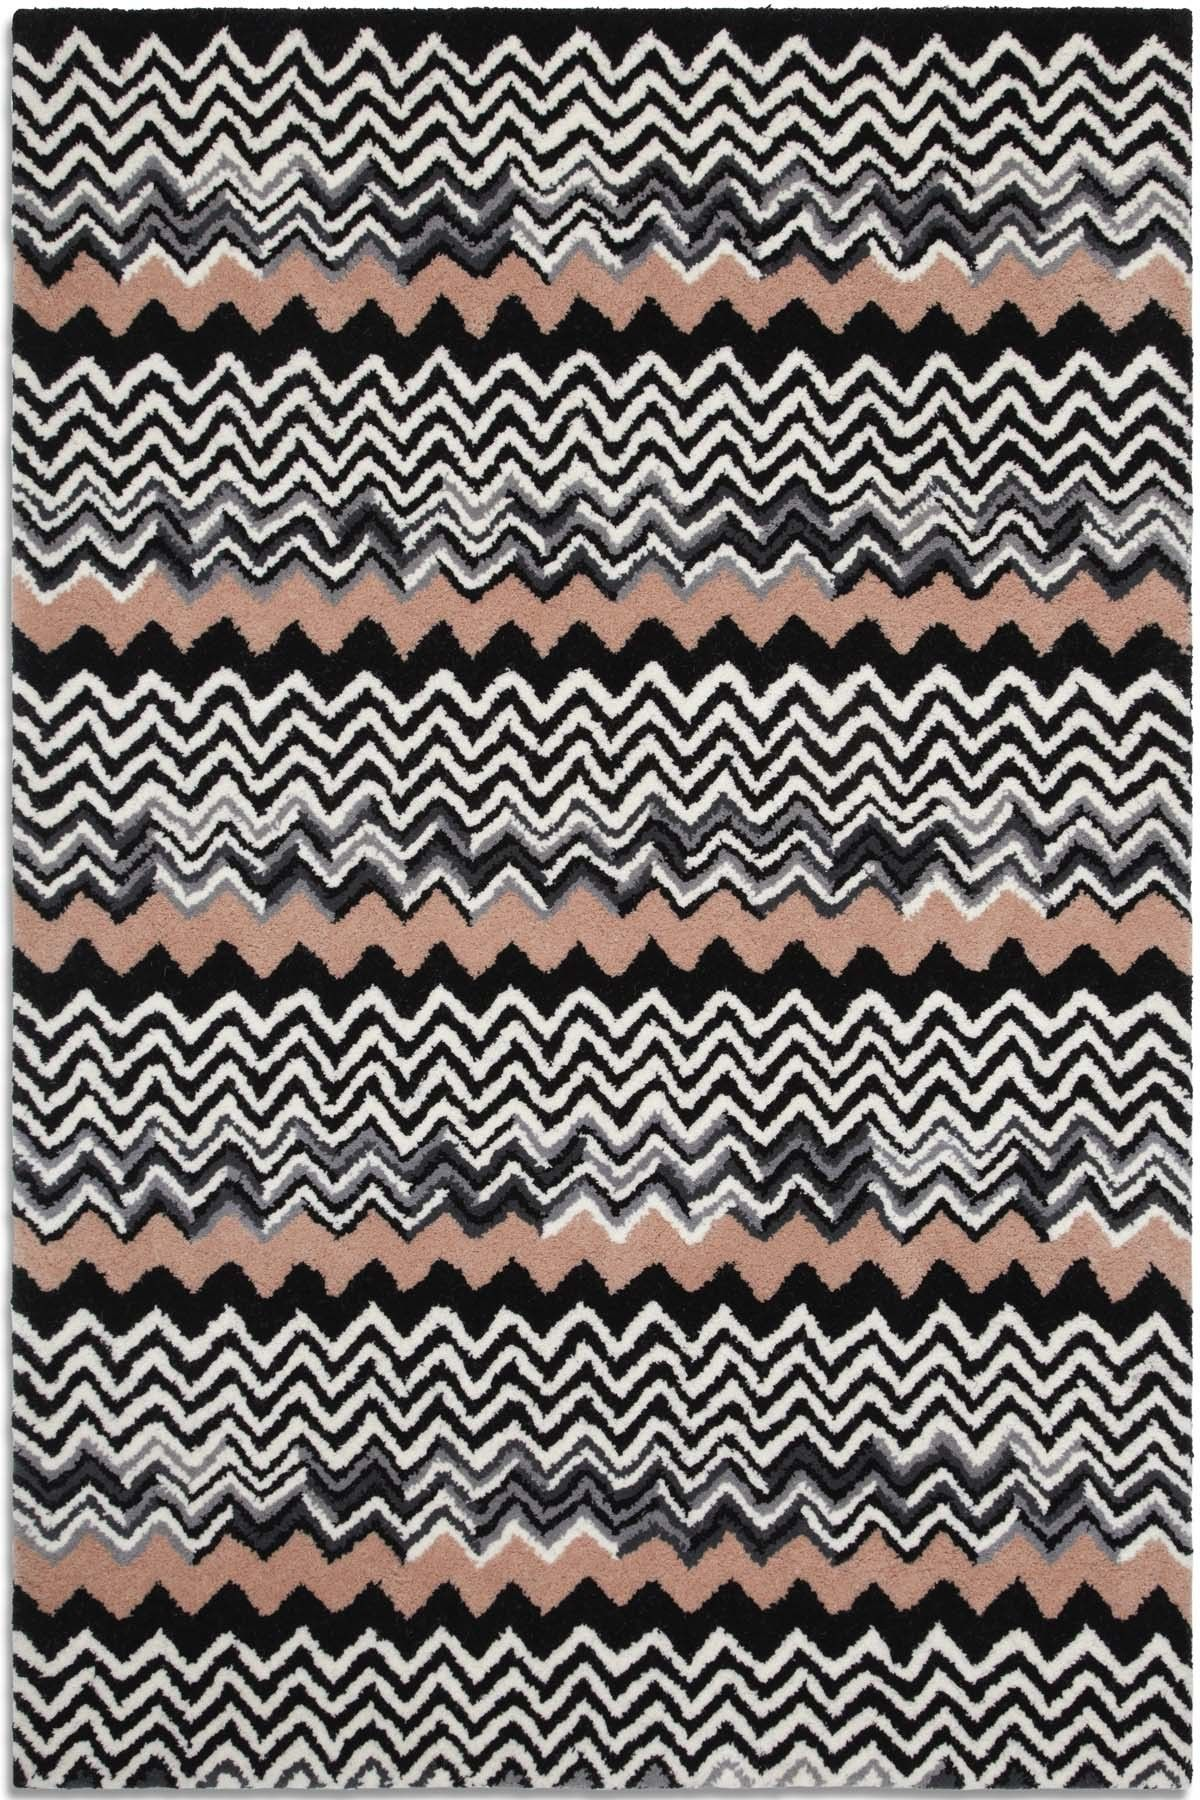 Aztec Rug Azt04 Plantation Rugs Contrasting Colours Zig Zag Together To